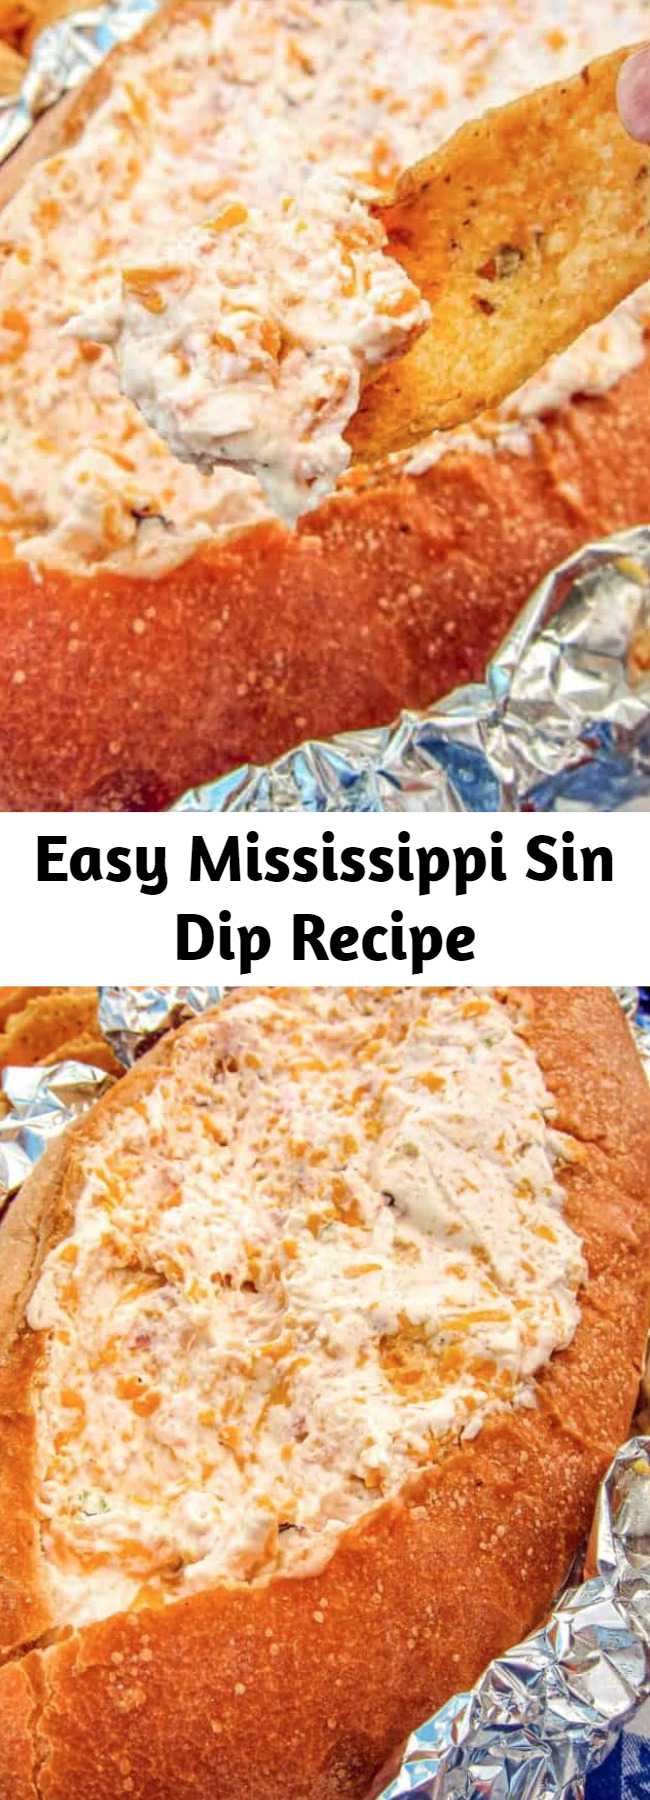 Easy Mississippi Sin Dip Recipe - ham, sour cream, cream cheese cheddar and ham baked in a bread bowl - SINFUL! There is never any left when I take this to a party! Everyone asks for the recipe. What's not to love???